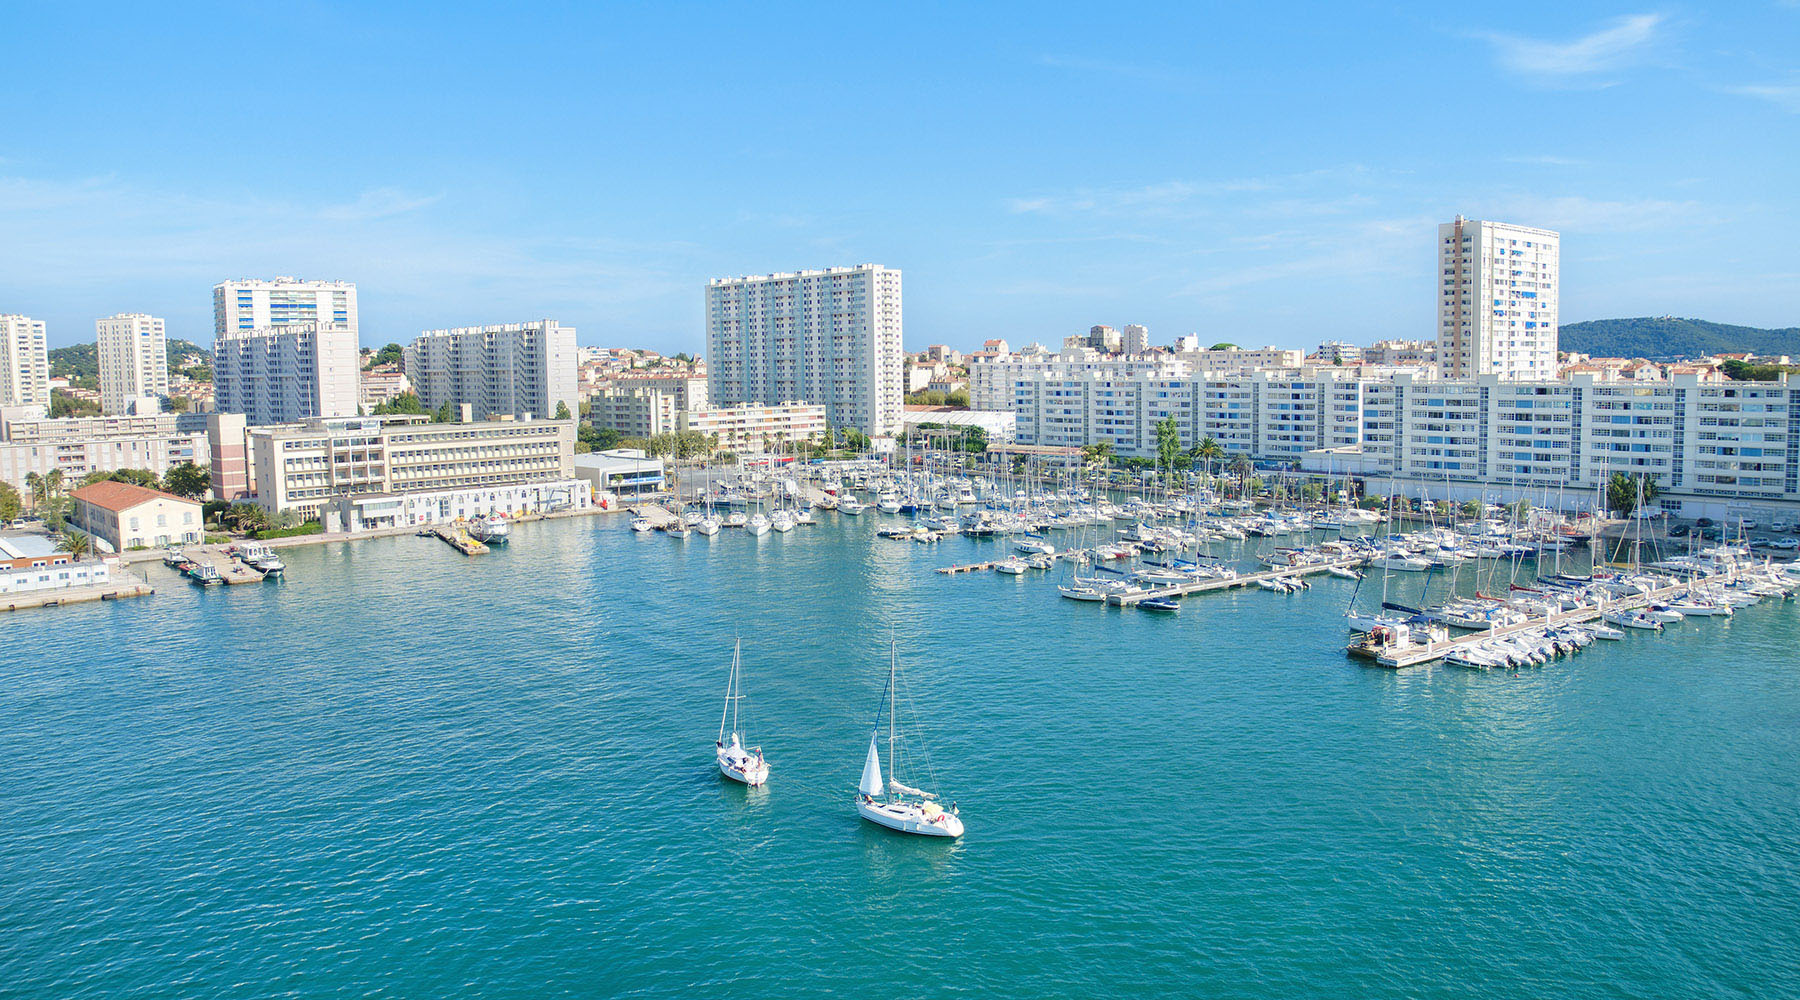 Hotel Port Toulon 3 Night Weekend Getaway Voyage 25 Sep 20